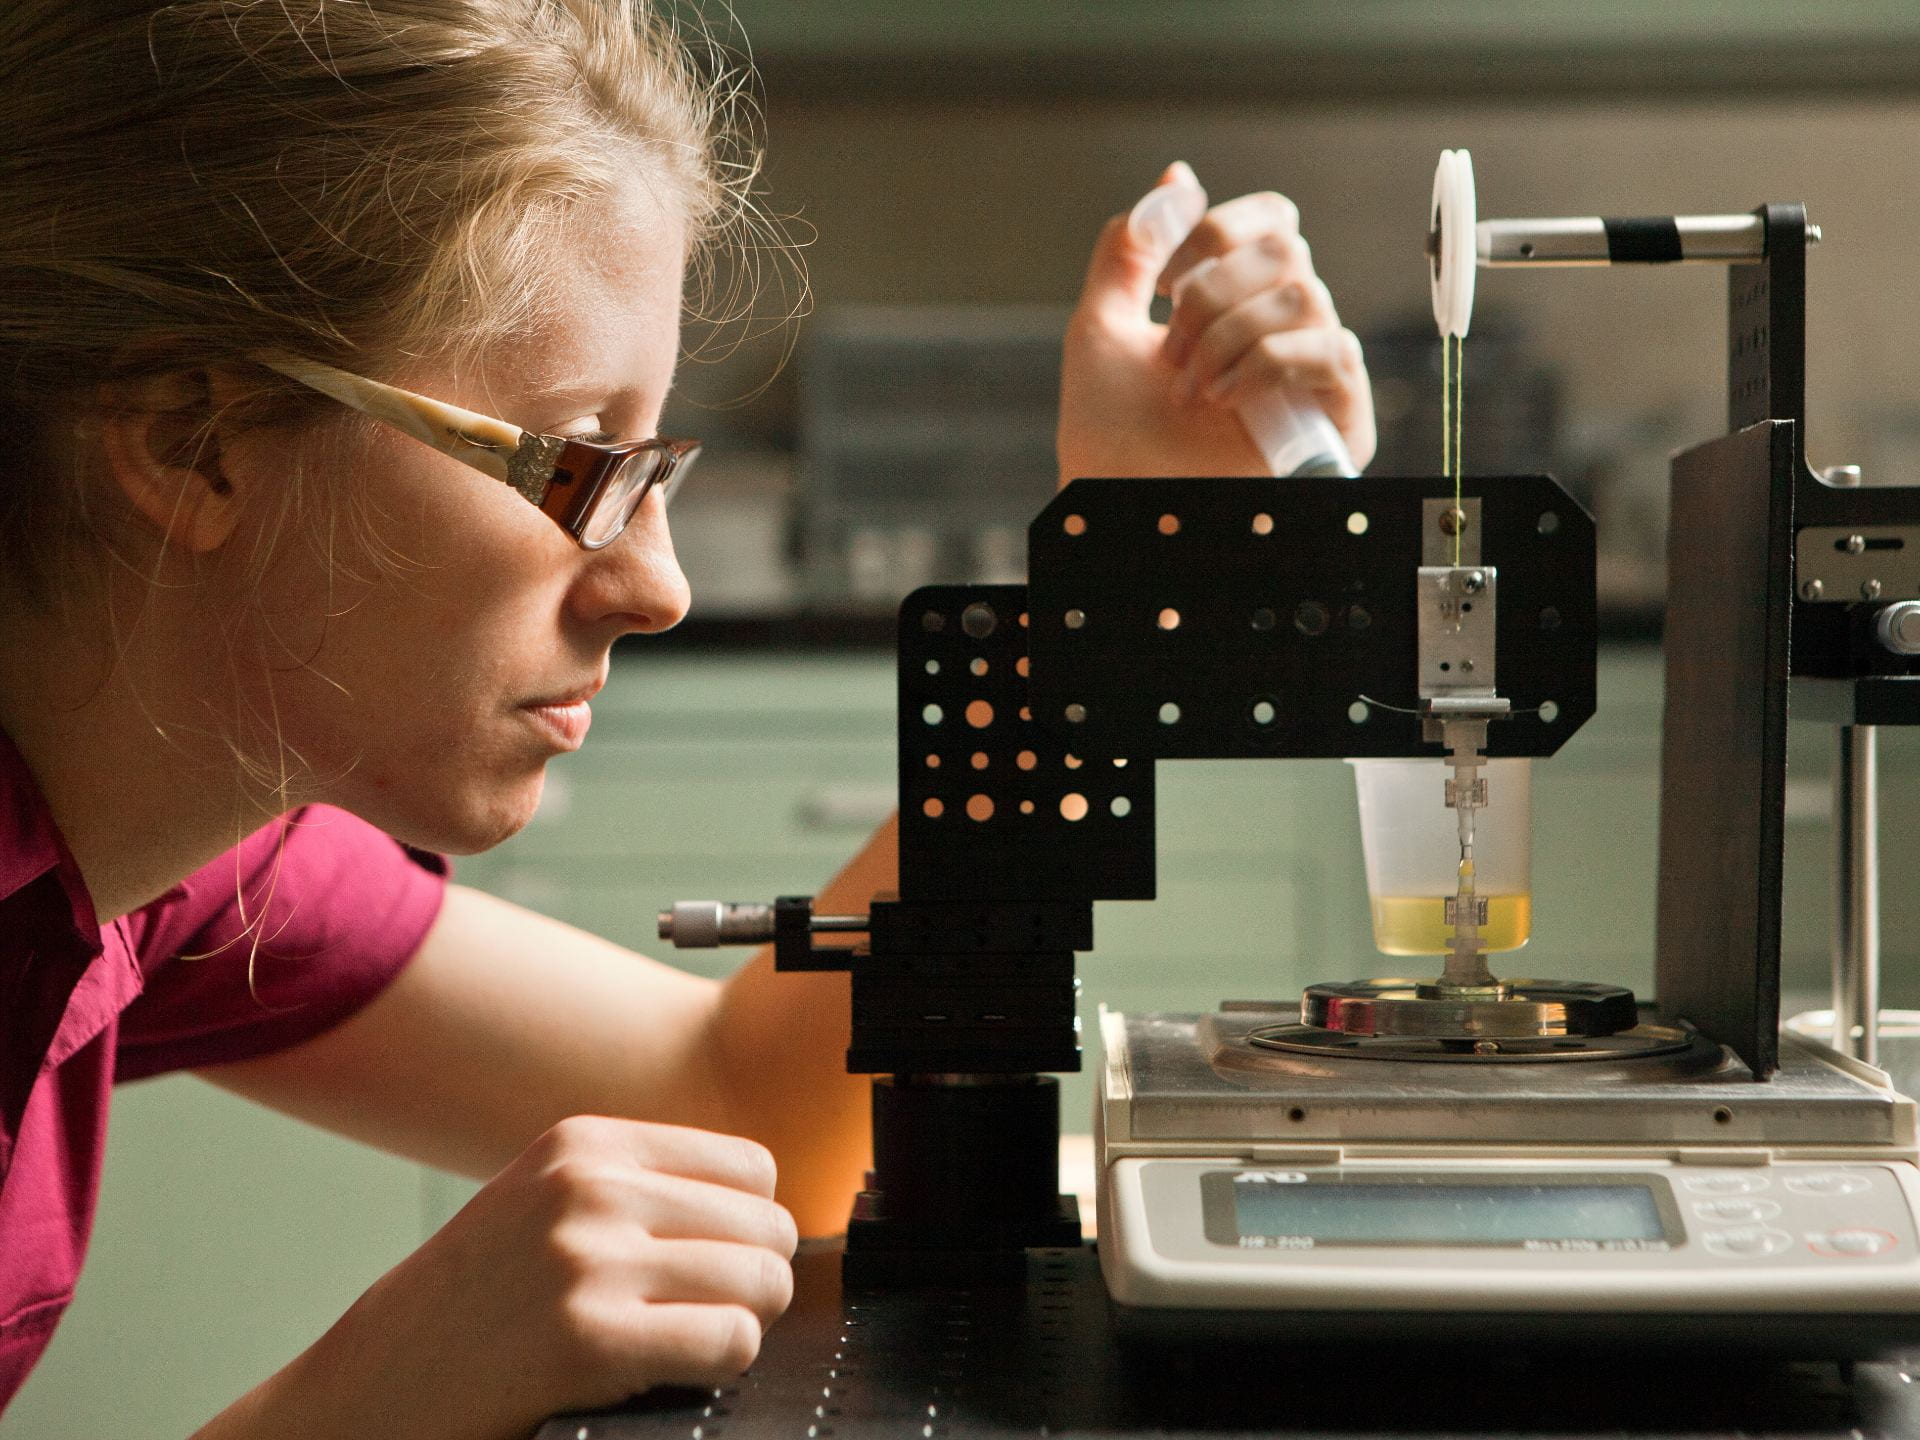 Photograph of a chemical engineering student in the lab